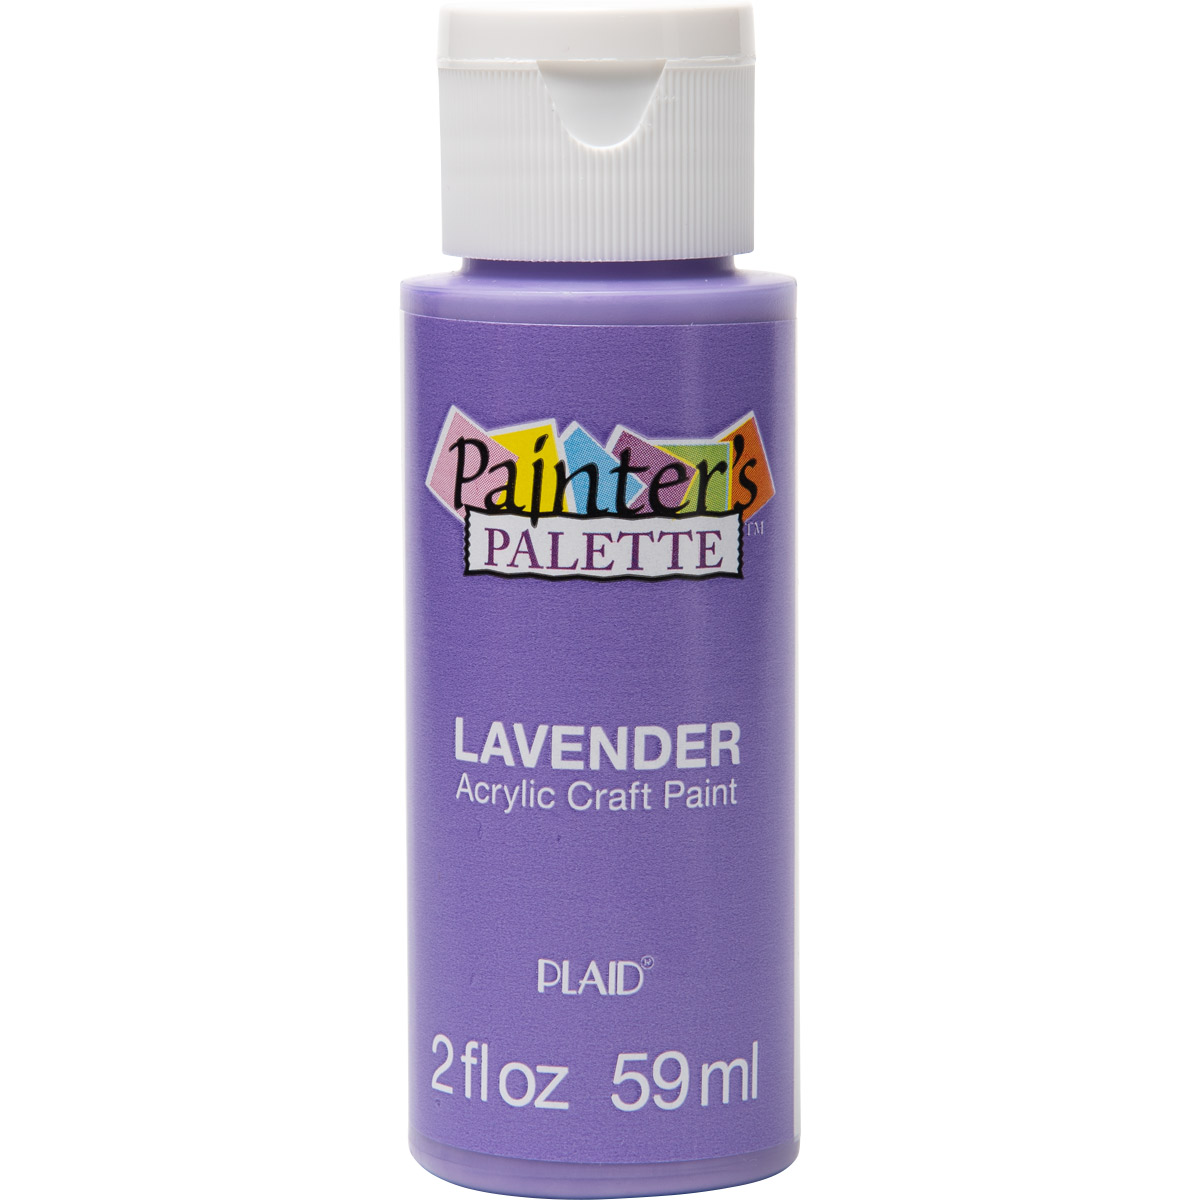 Plaid ® Painter's Palette™ Acrylic Paint - Lavender, 2 oz.